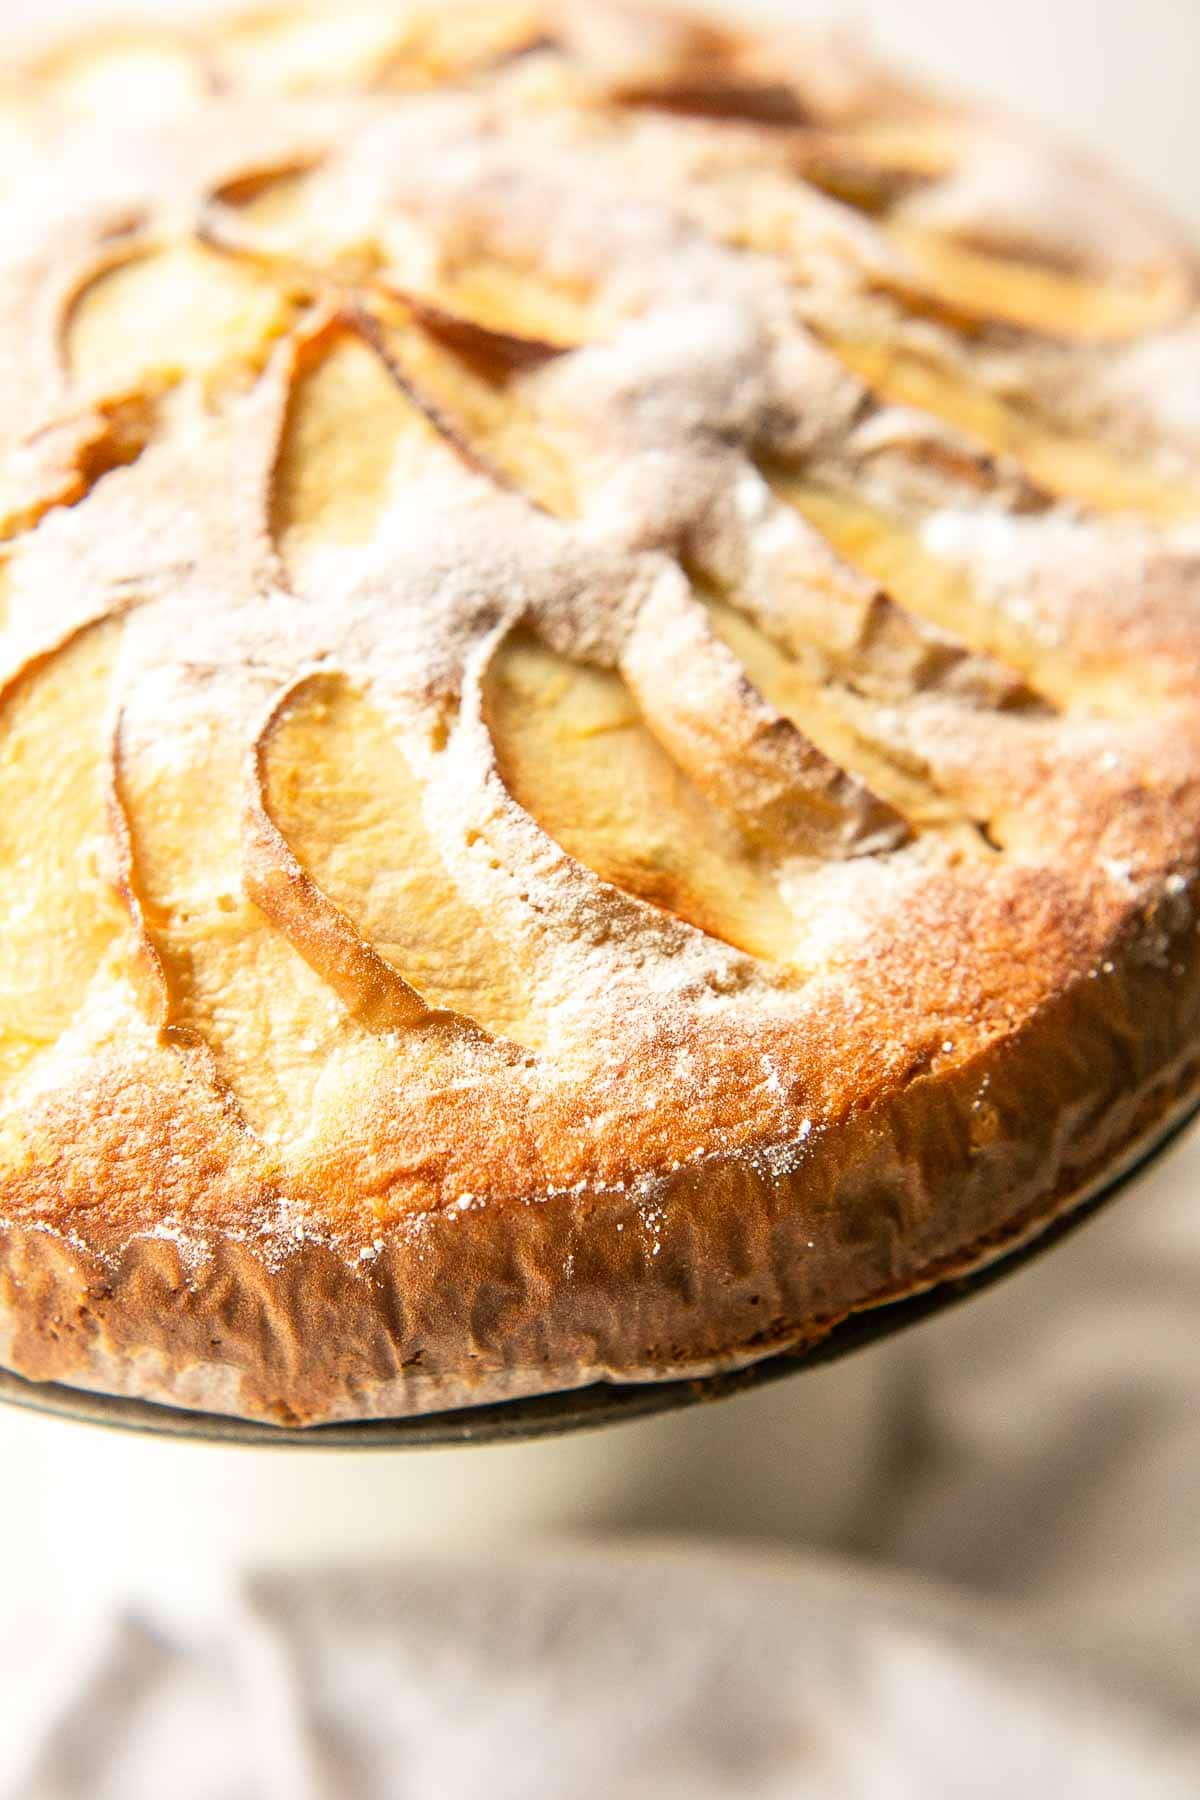 The best homemade apple cake recipe ever! Without butter but still moist, dense and delicious. Visit fastfoodbistro.com for the full recipe #fastfoodbistro #applecake #applecakerecipe #cake